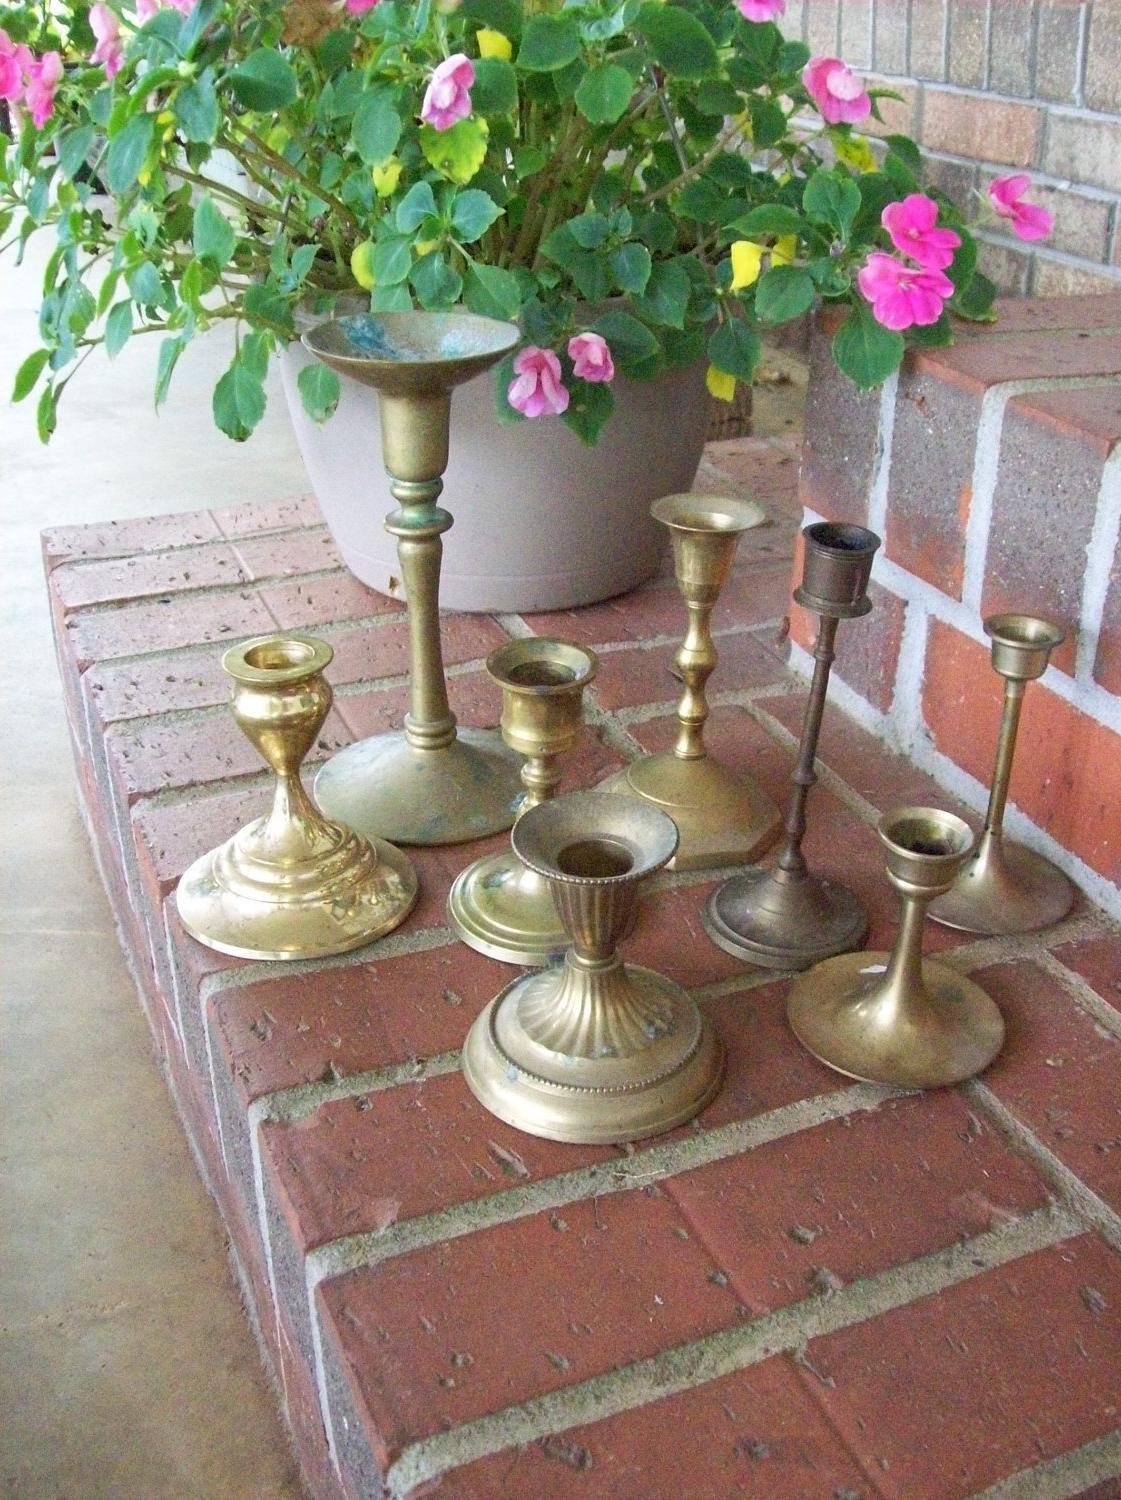 Vintage Brass Candleholders Rustic Wedding Decor 8 Candlesticks Shabby Chic